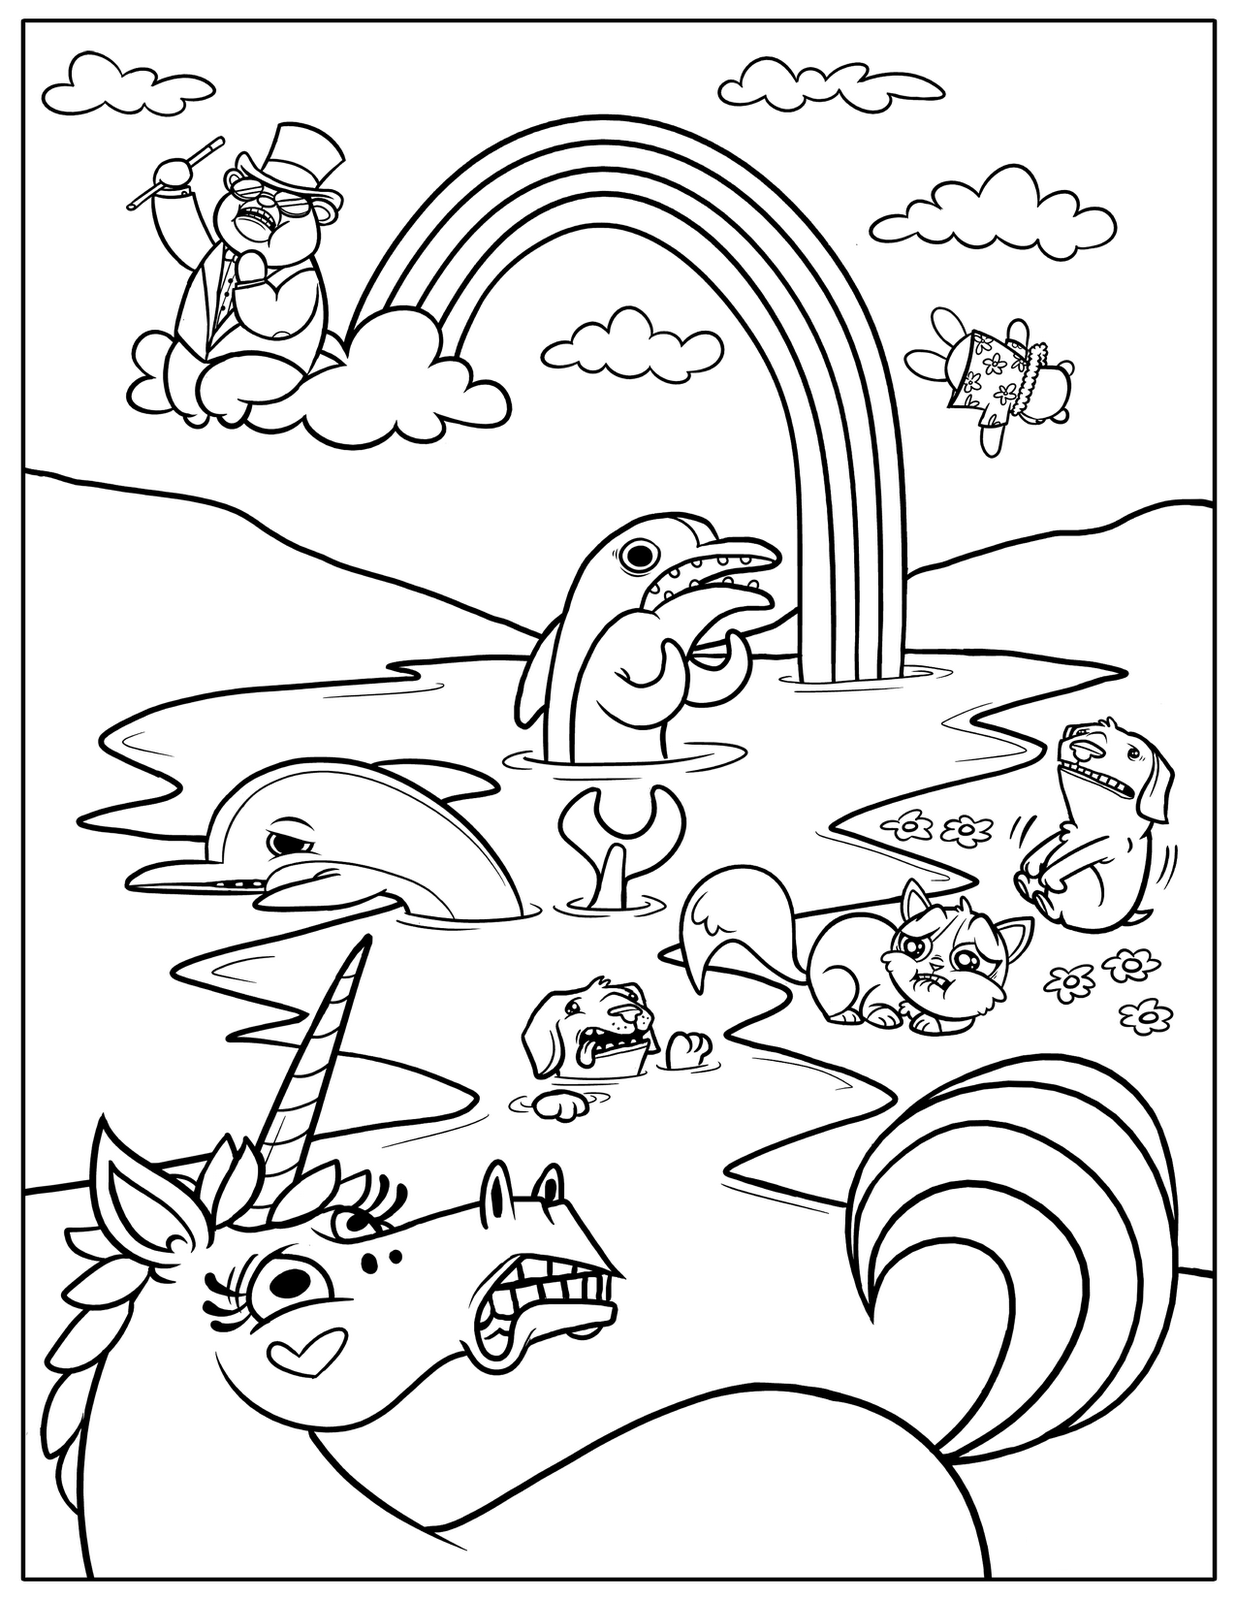 rainbow coloring pages kids printable - Drawing For Kids To Color